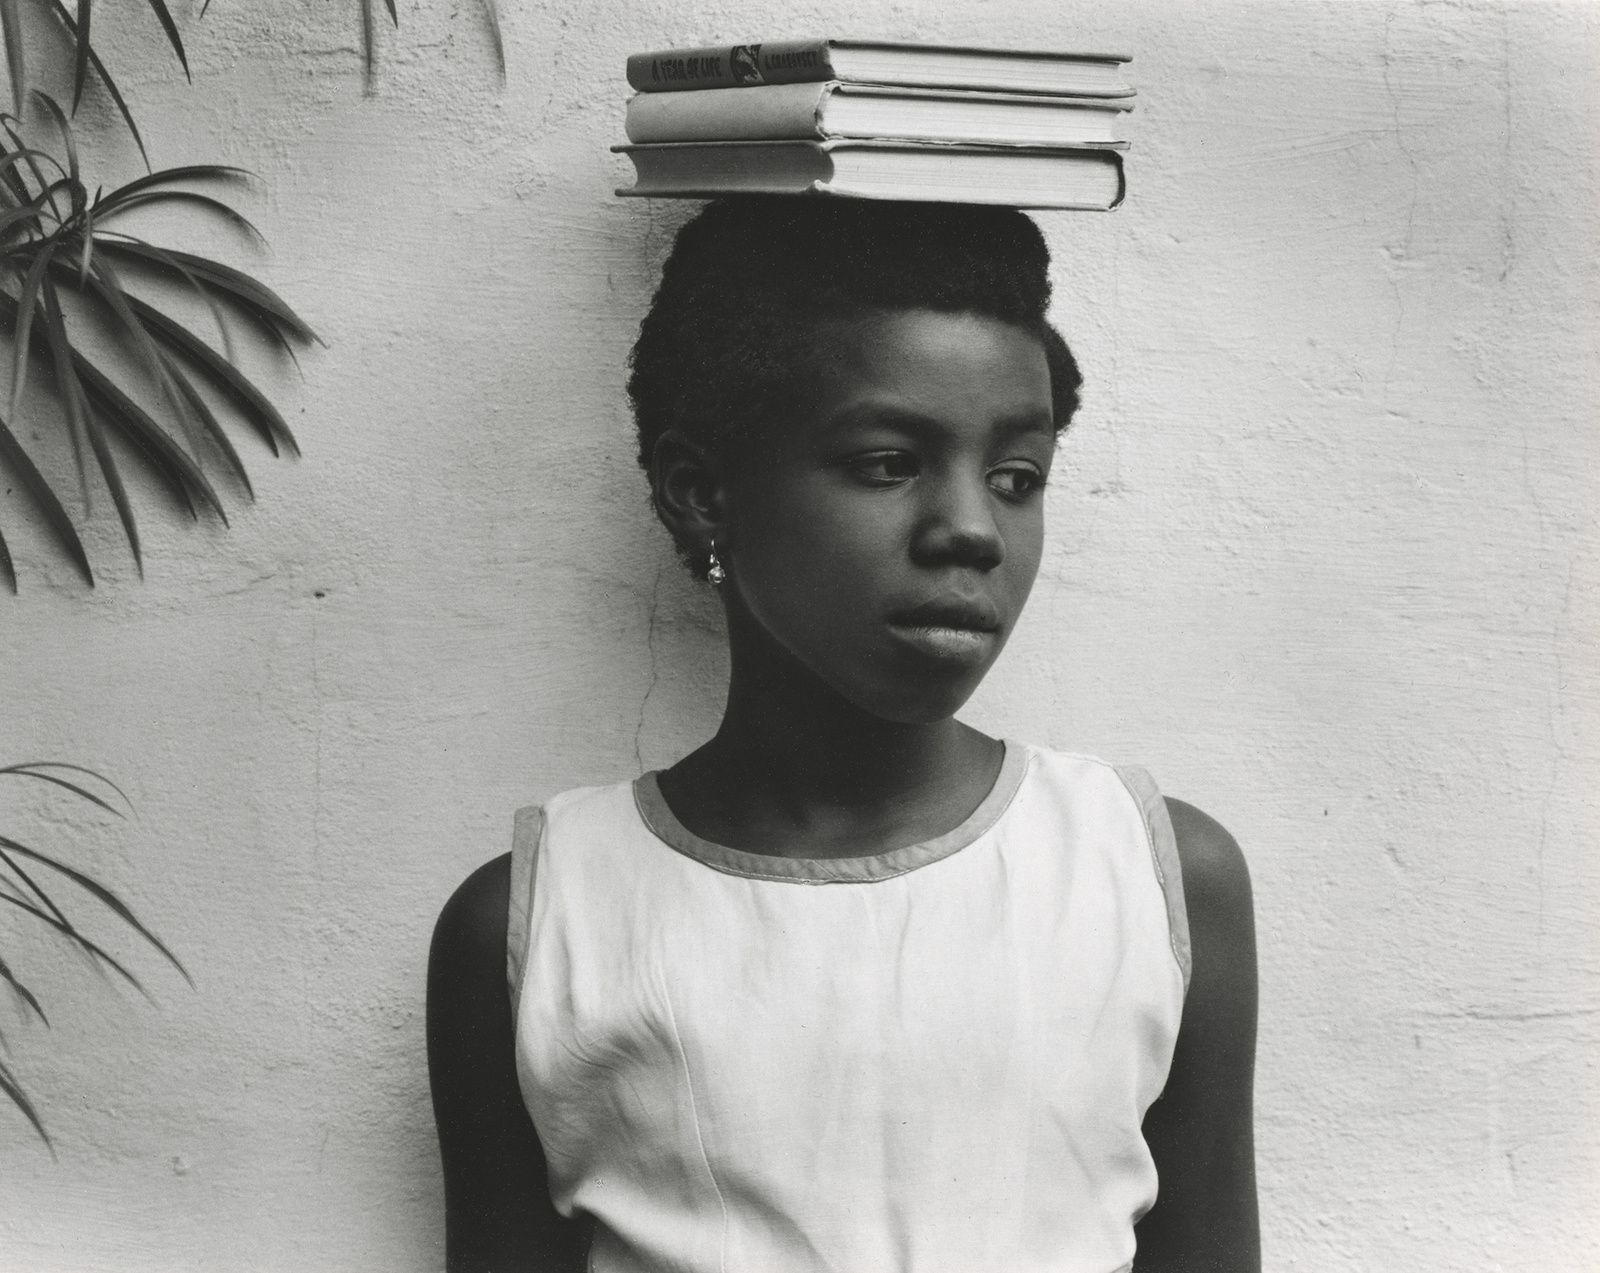 Photo by Paul Strand - Via: kalamu.com